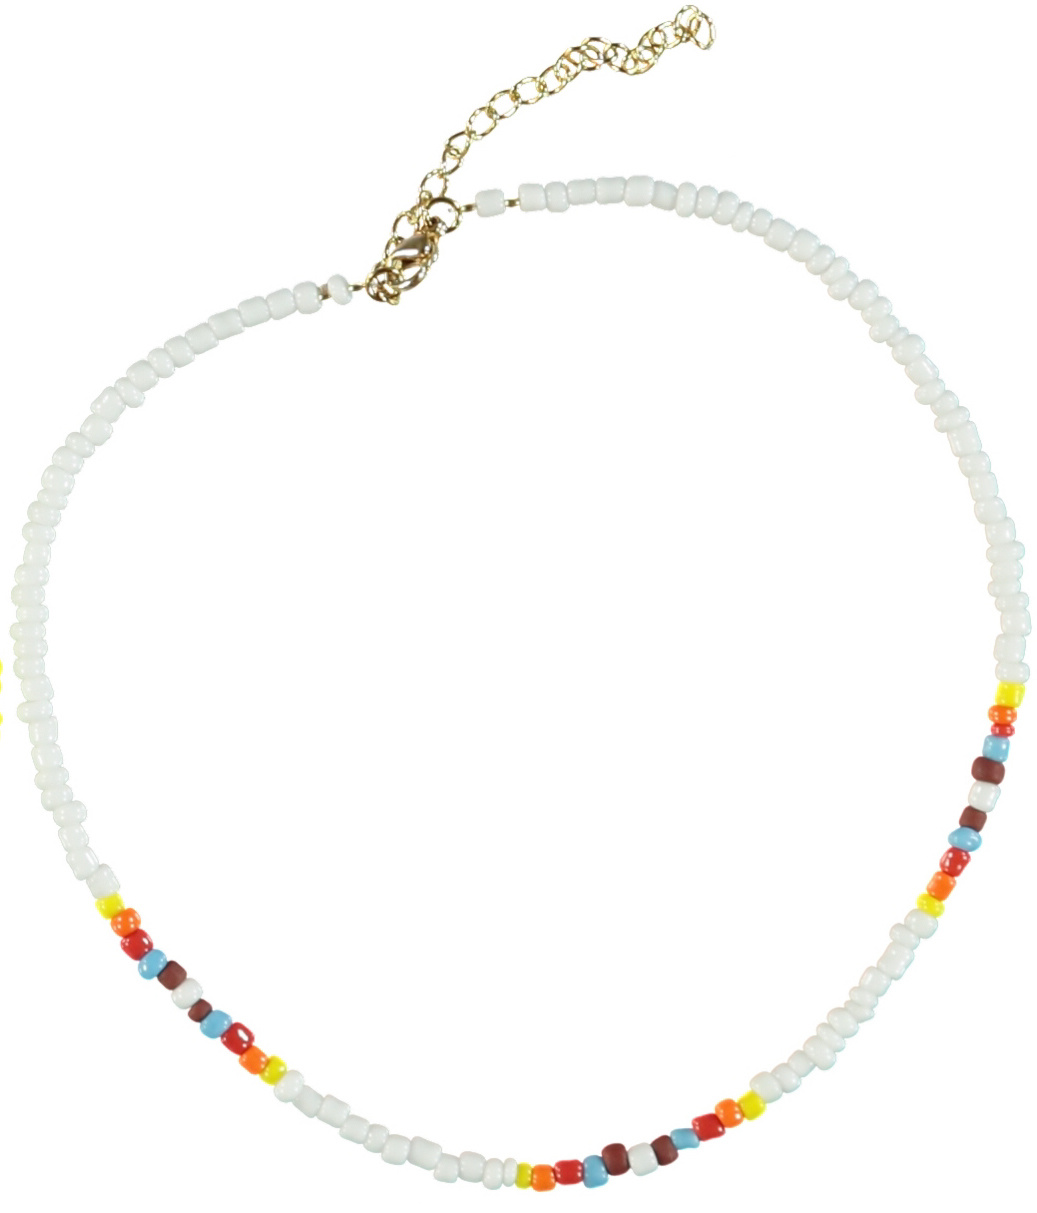 necklaces | white-1